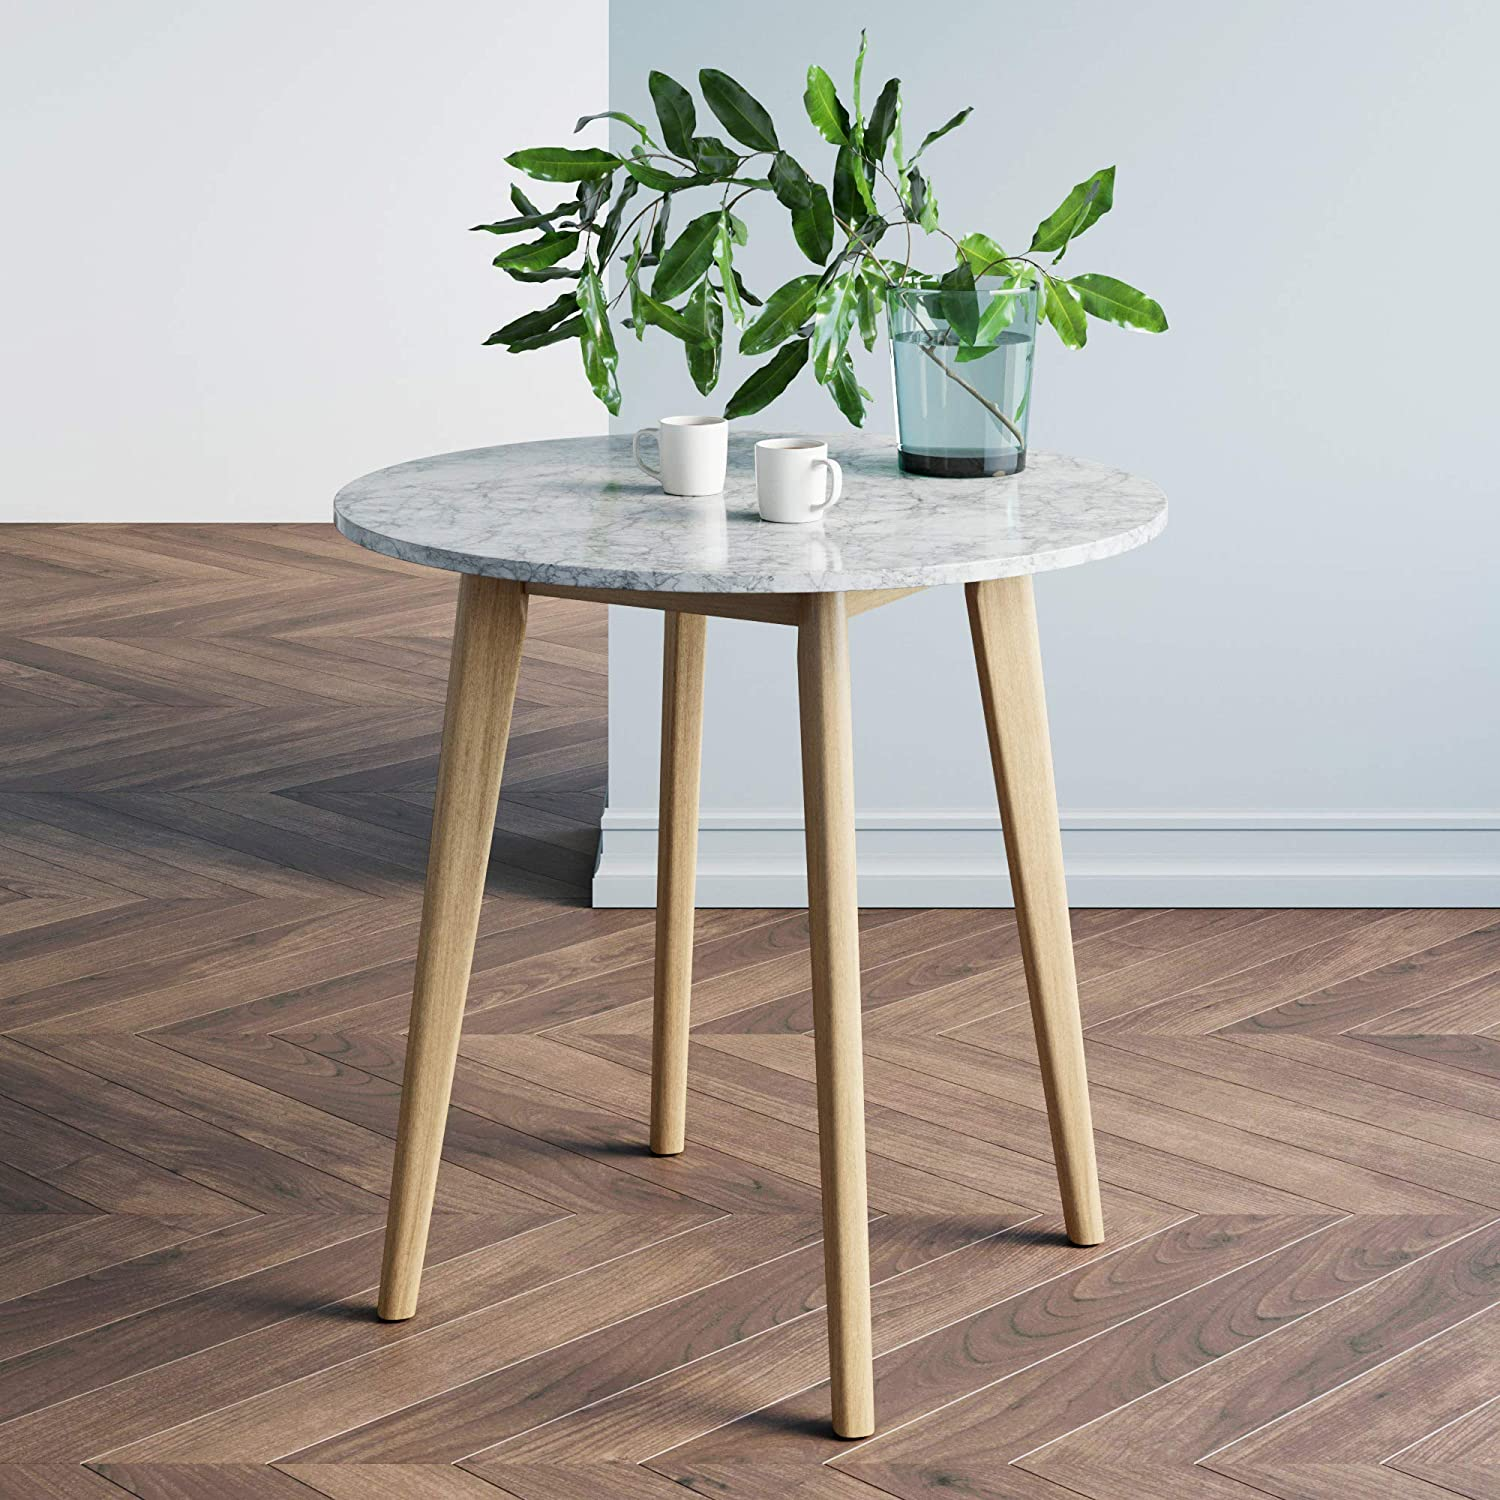 Amazon Com Nathan James Amalia Round Bistro Dining Table With Legs In Tan Wood Finish And Faux White Carrara Marble Top Light Brown Furniture Decor